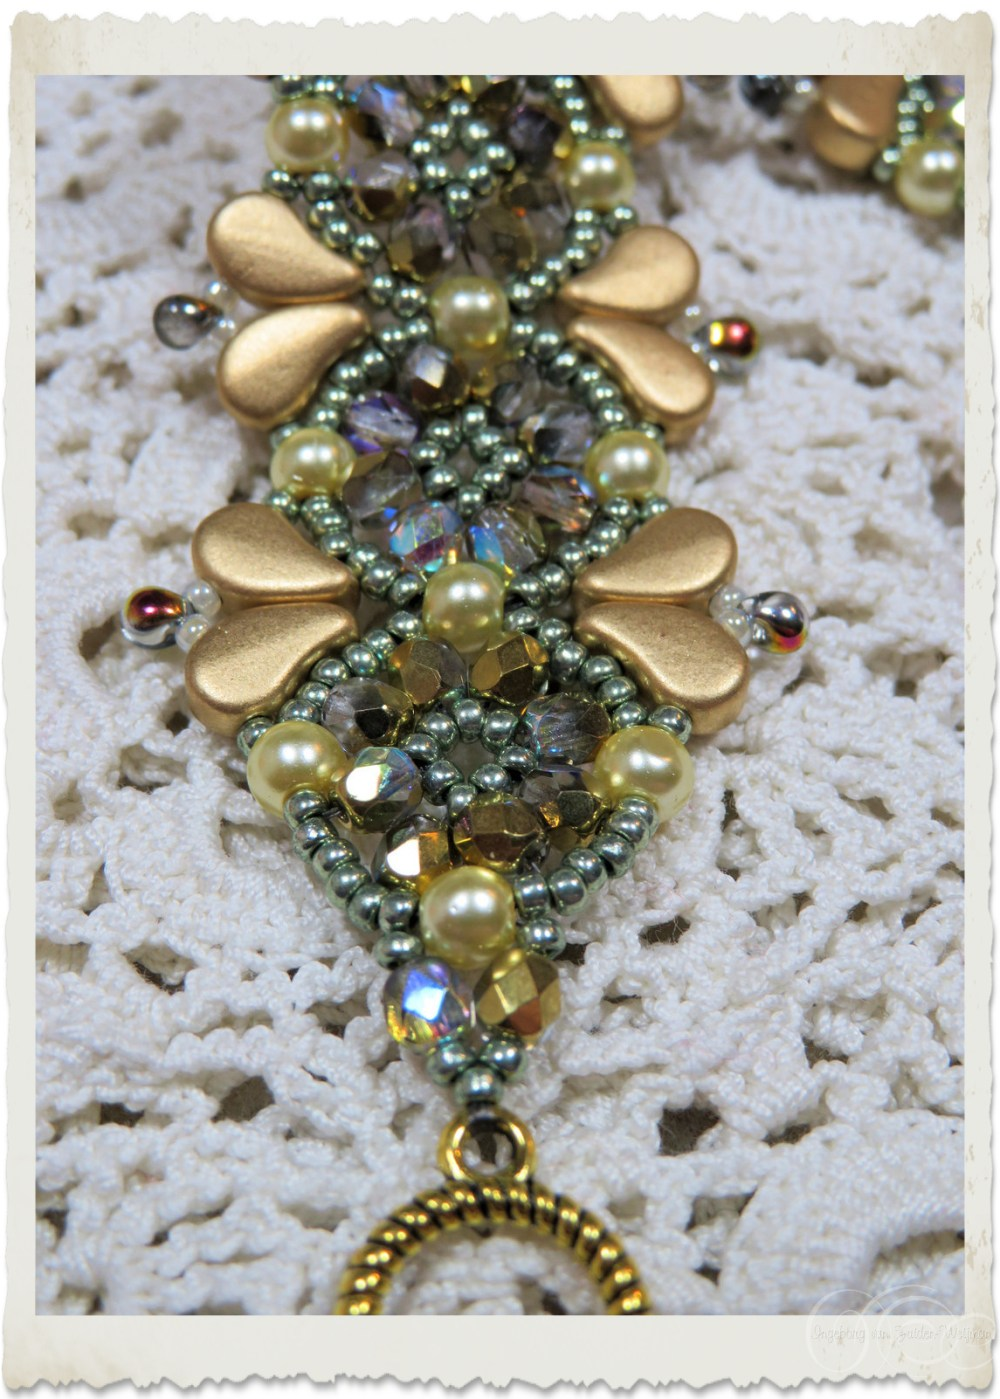 green gold bracelet details with pearls